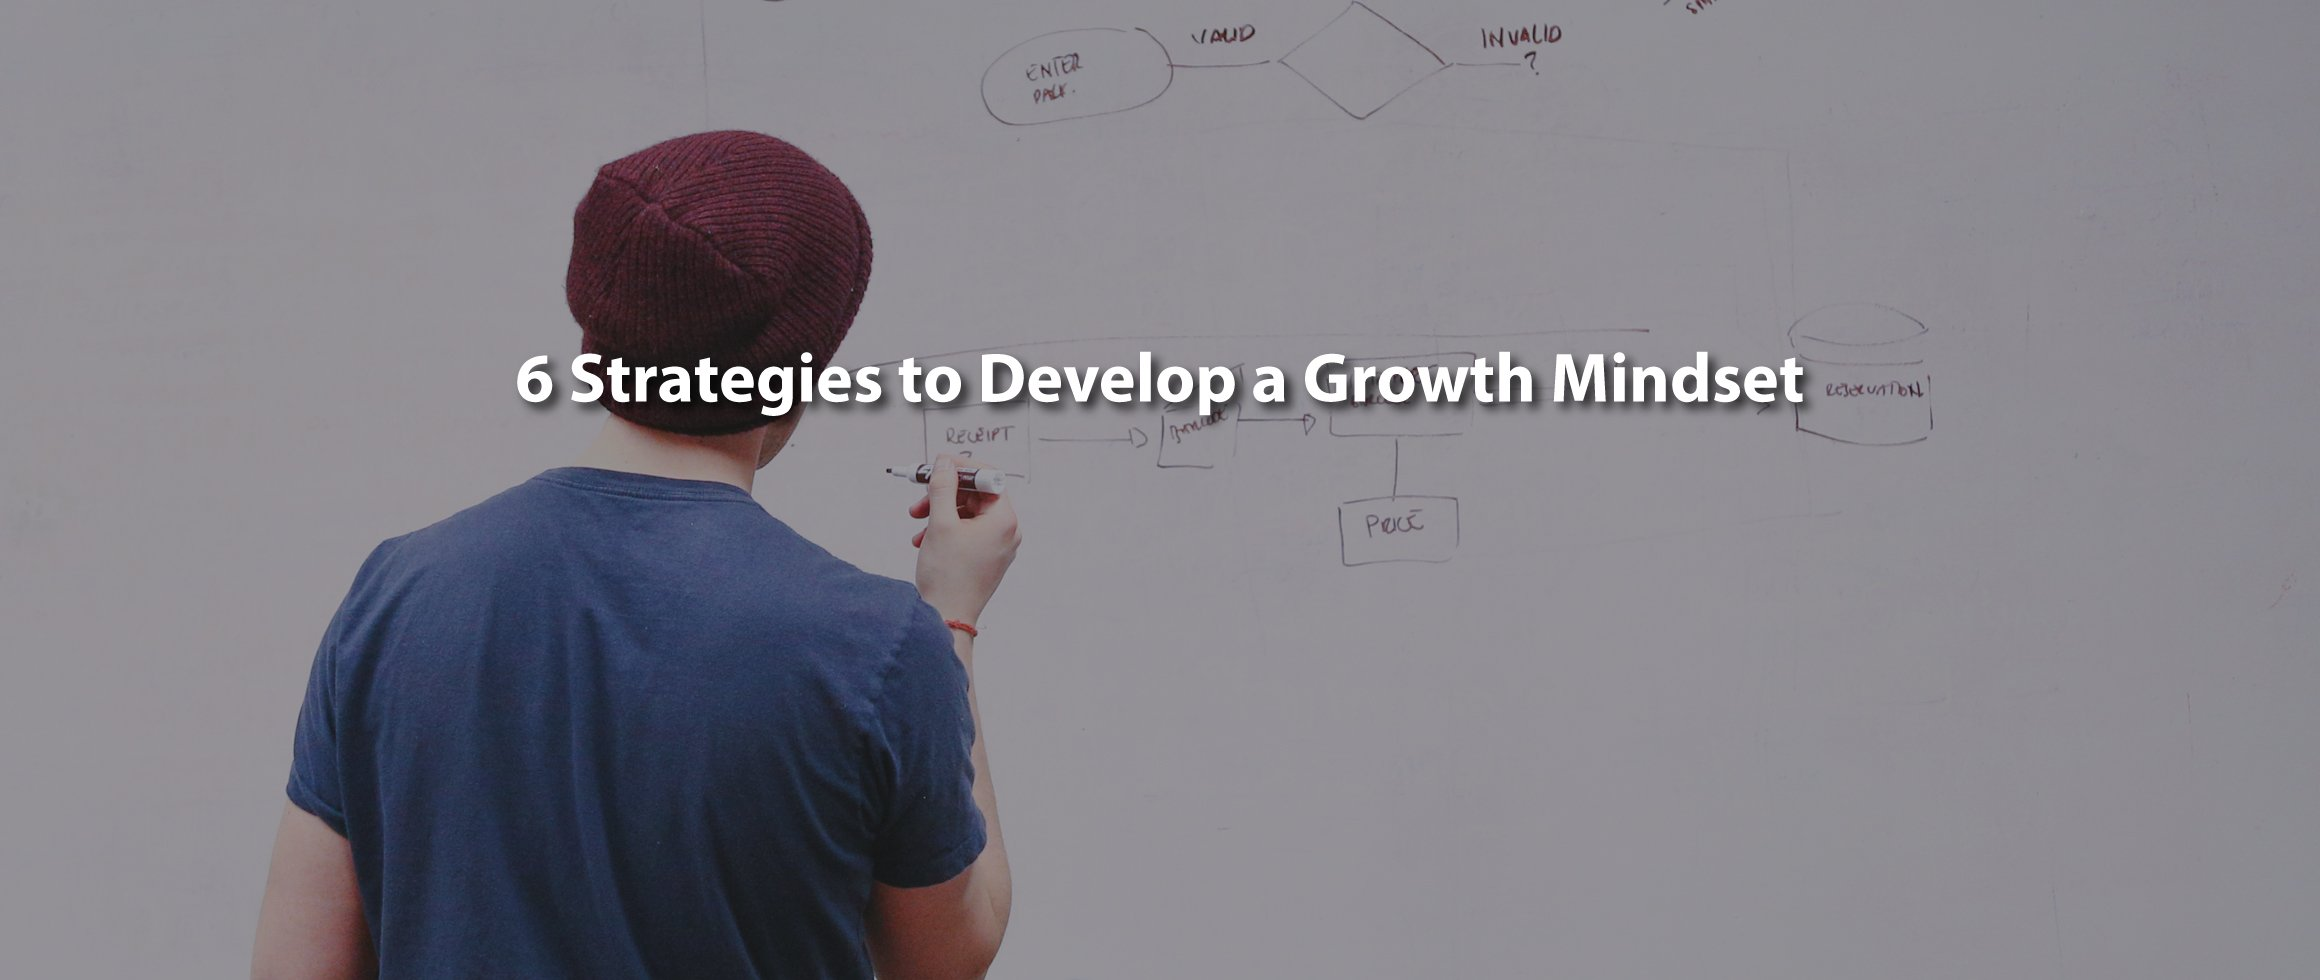 6 Strategies to Develop a Growth Mindset